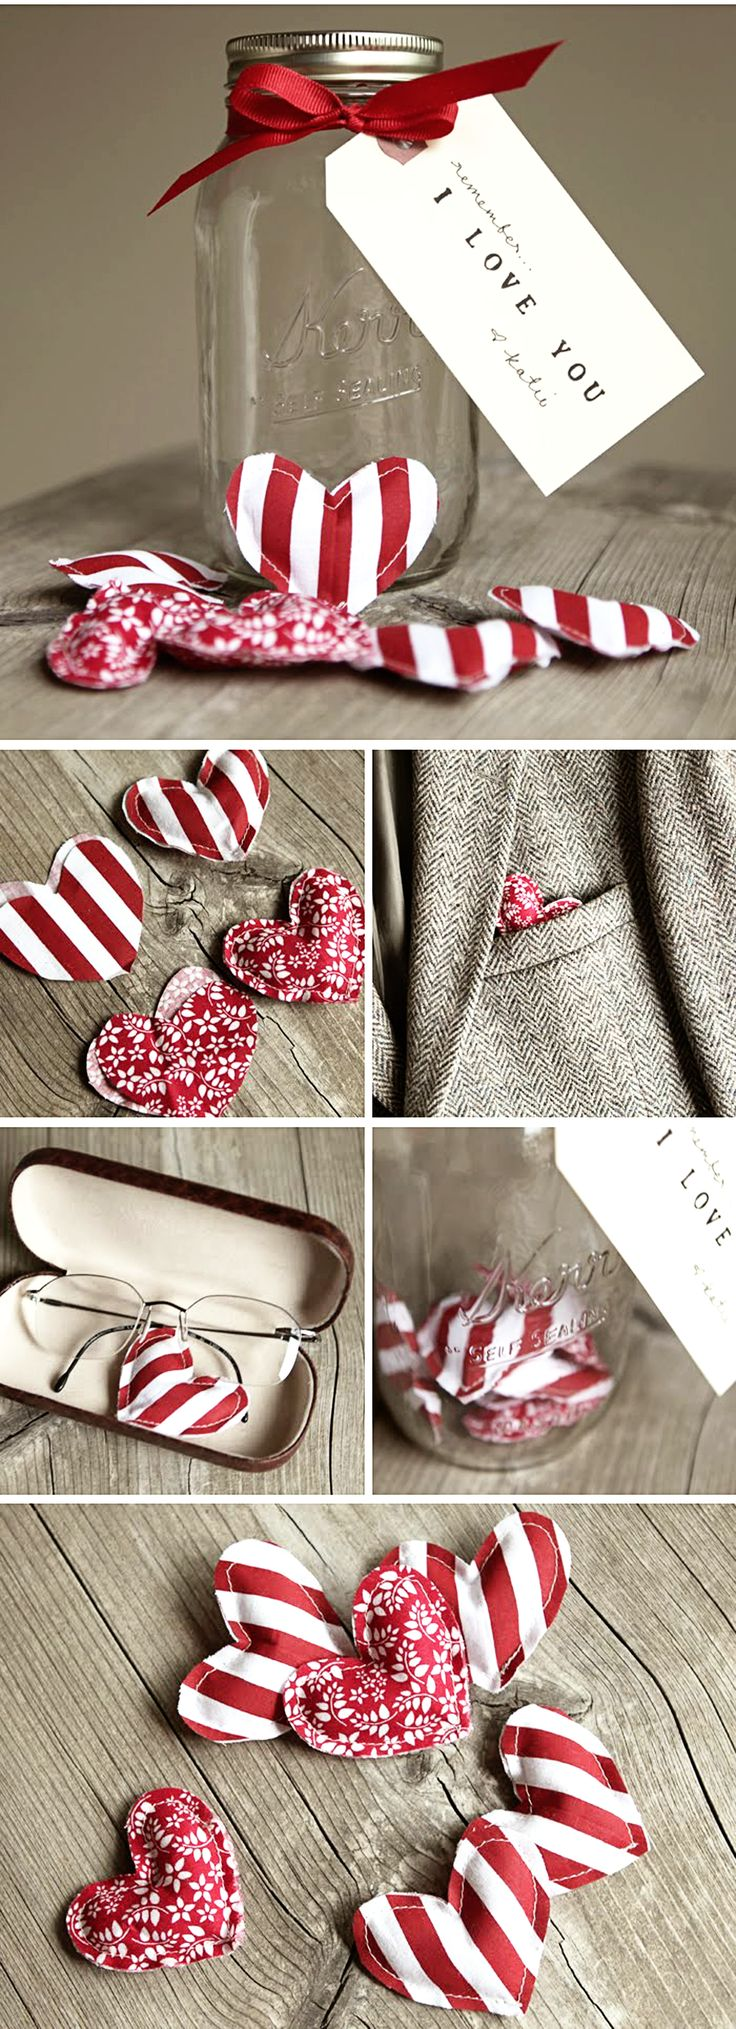 I think it would be cute to attach a small note to each heart with one thing you love about the person and hide them around the house, car, etc. for him/ her to find throughout the day and collect in their jar